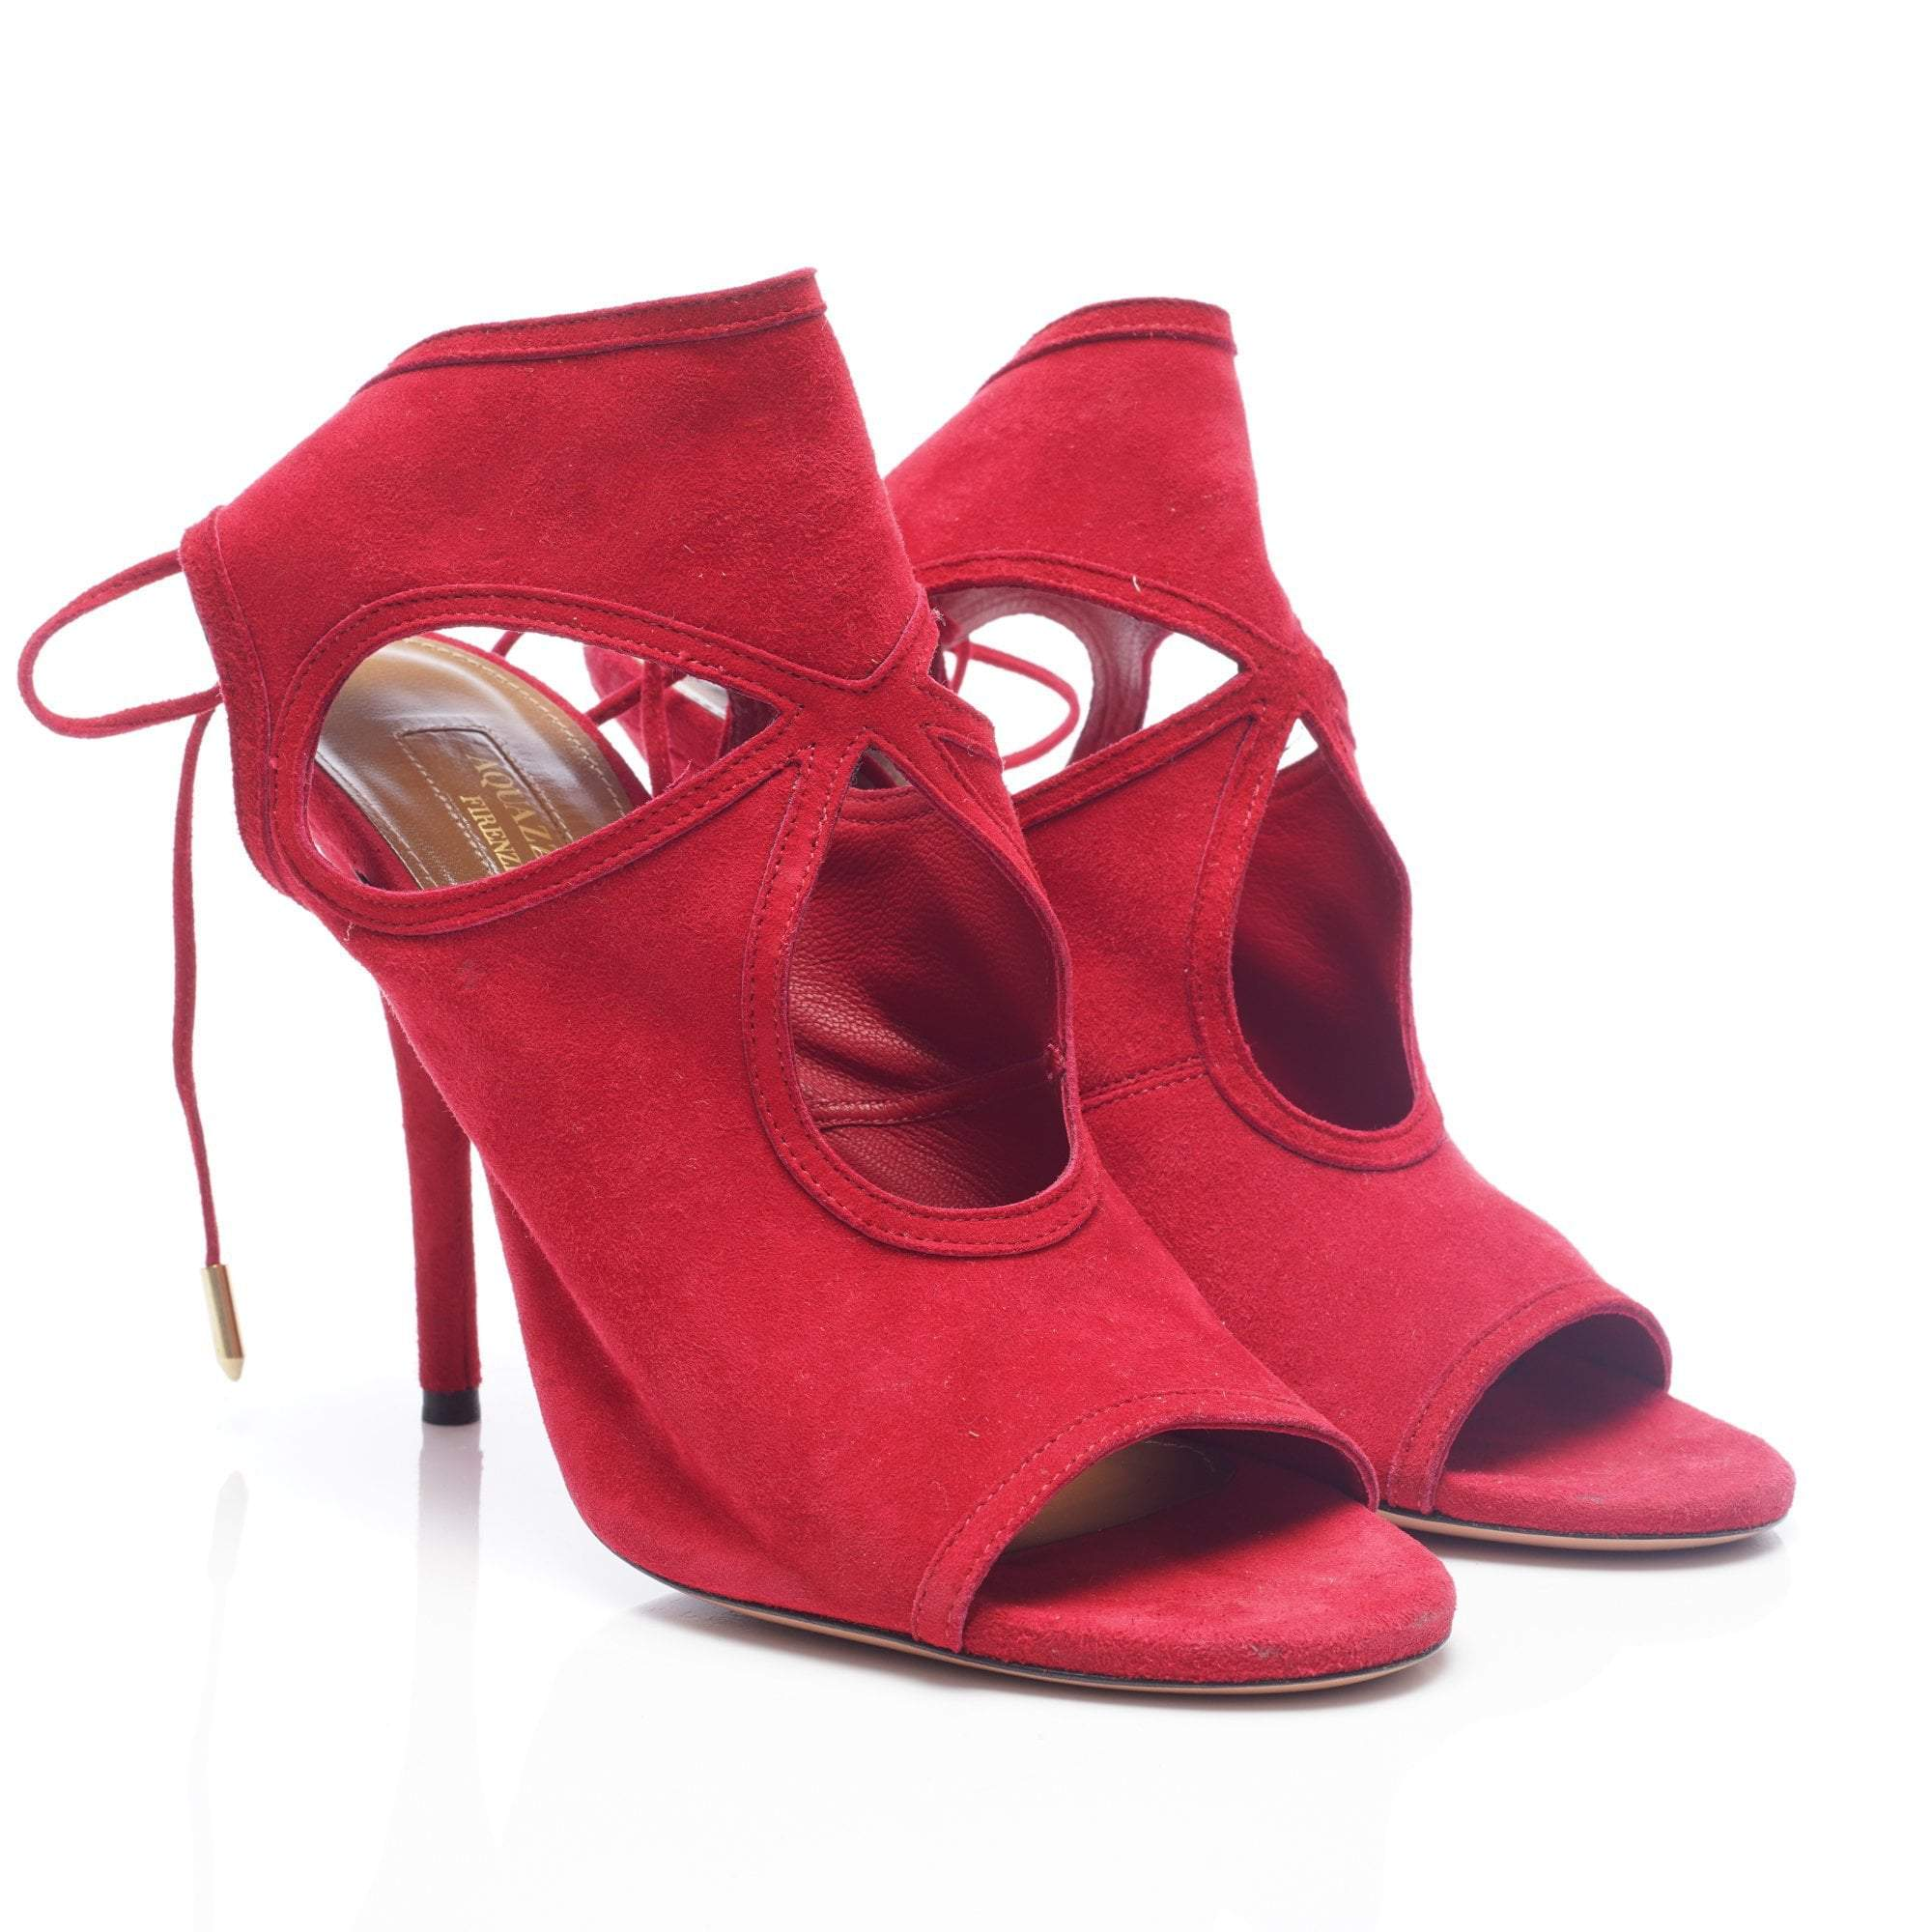 Aquazzura Sexy Thing 85 Suede Sandals